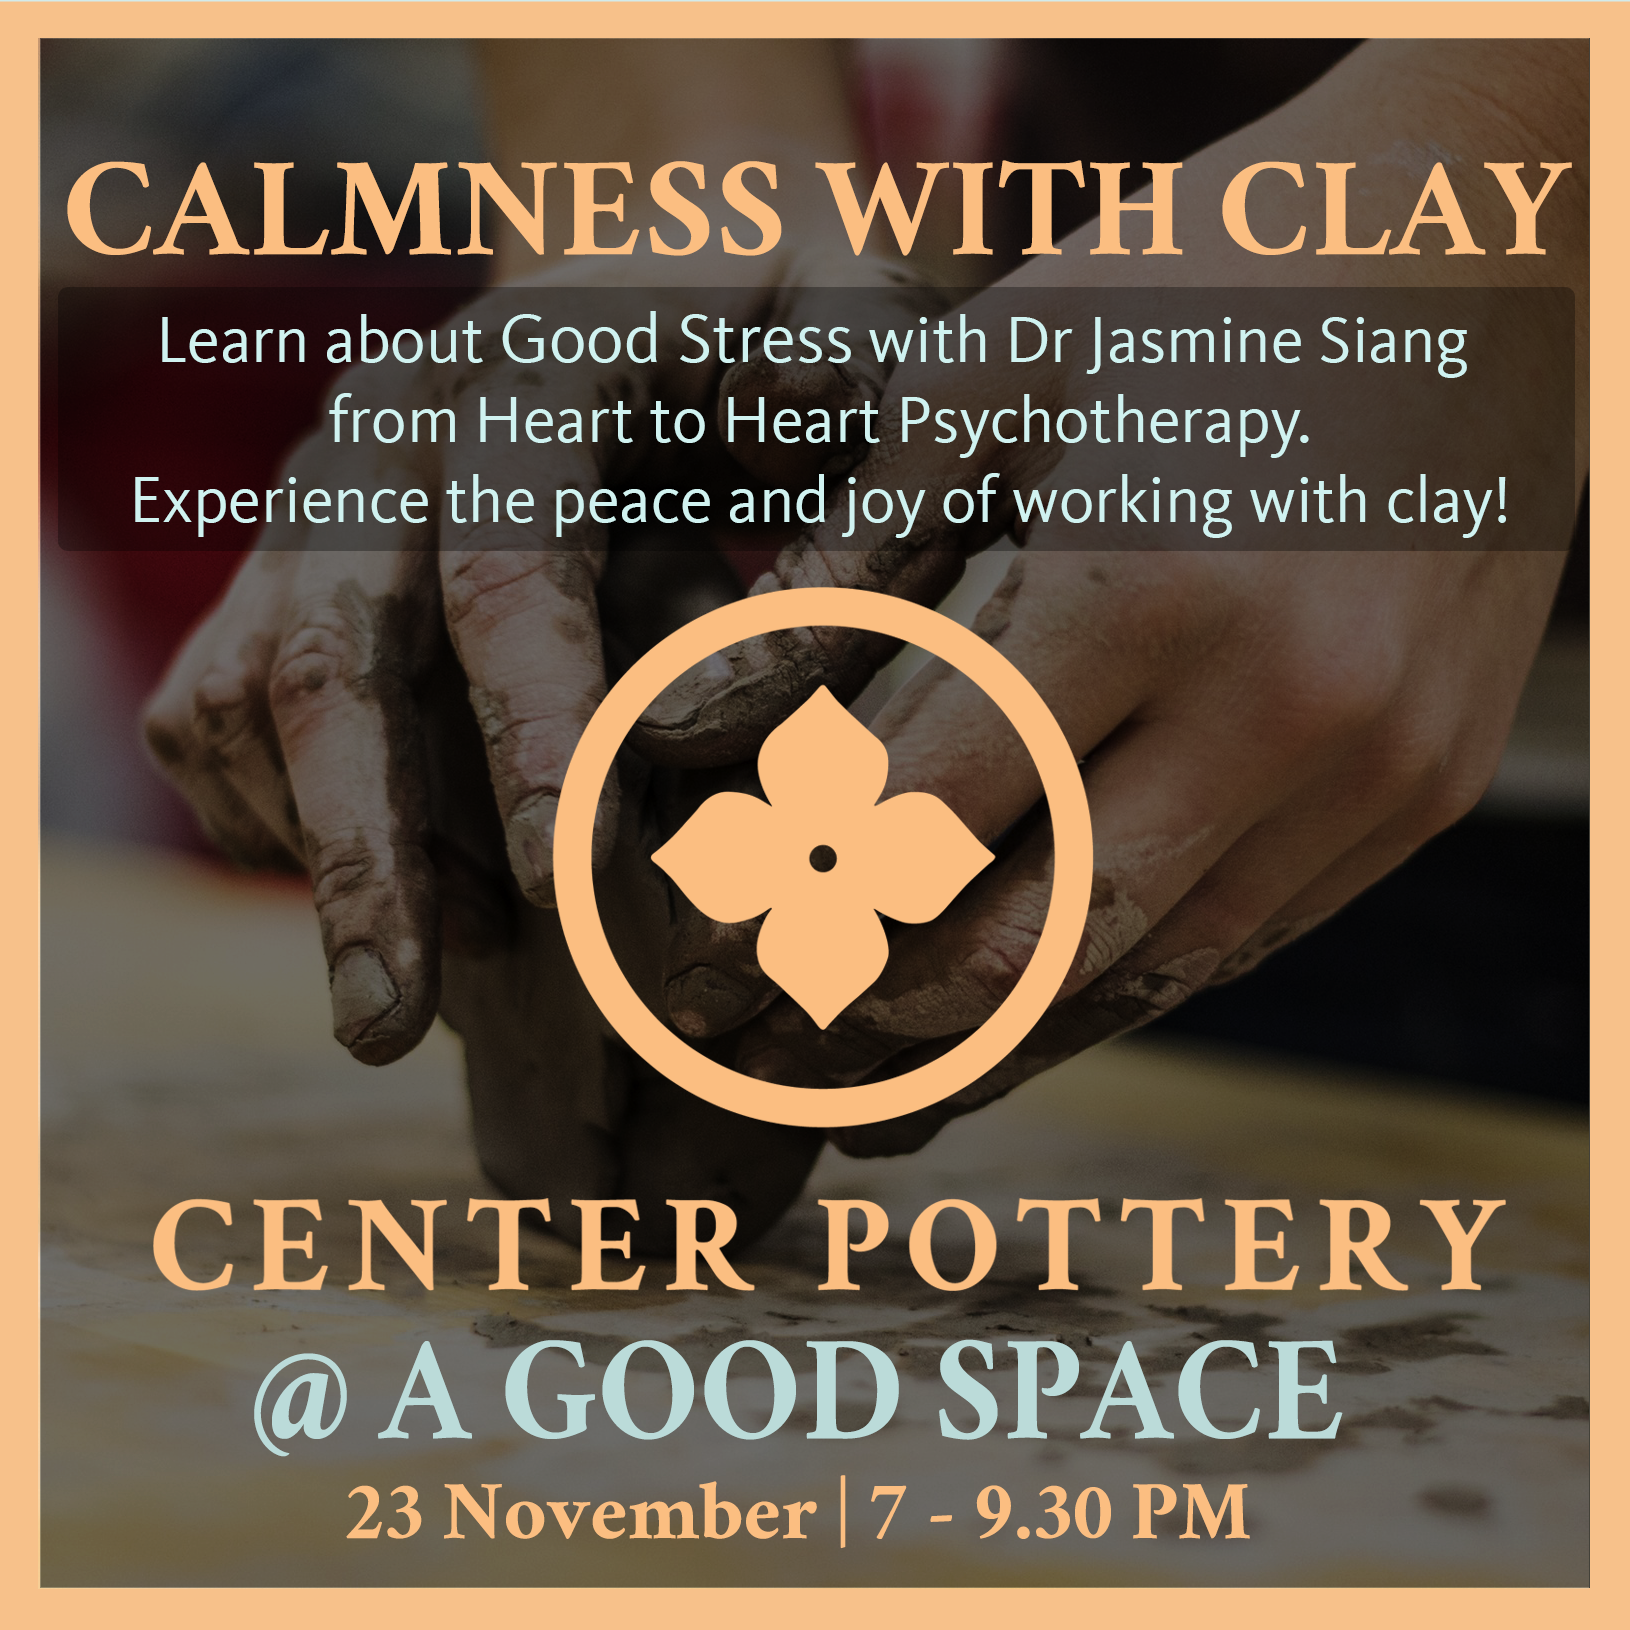 calmness-with-clay-poster_0_04919100_1509332880 Event - Calmness with Clay